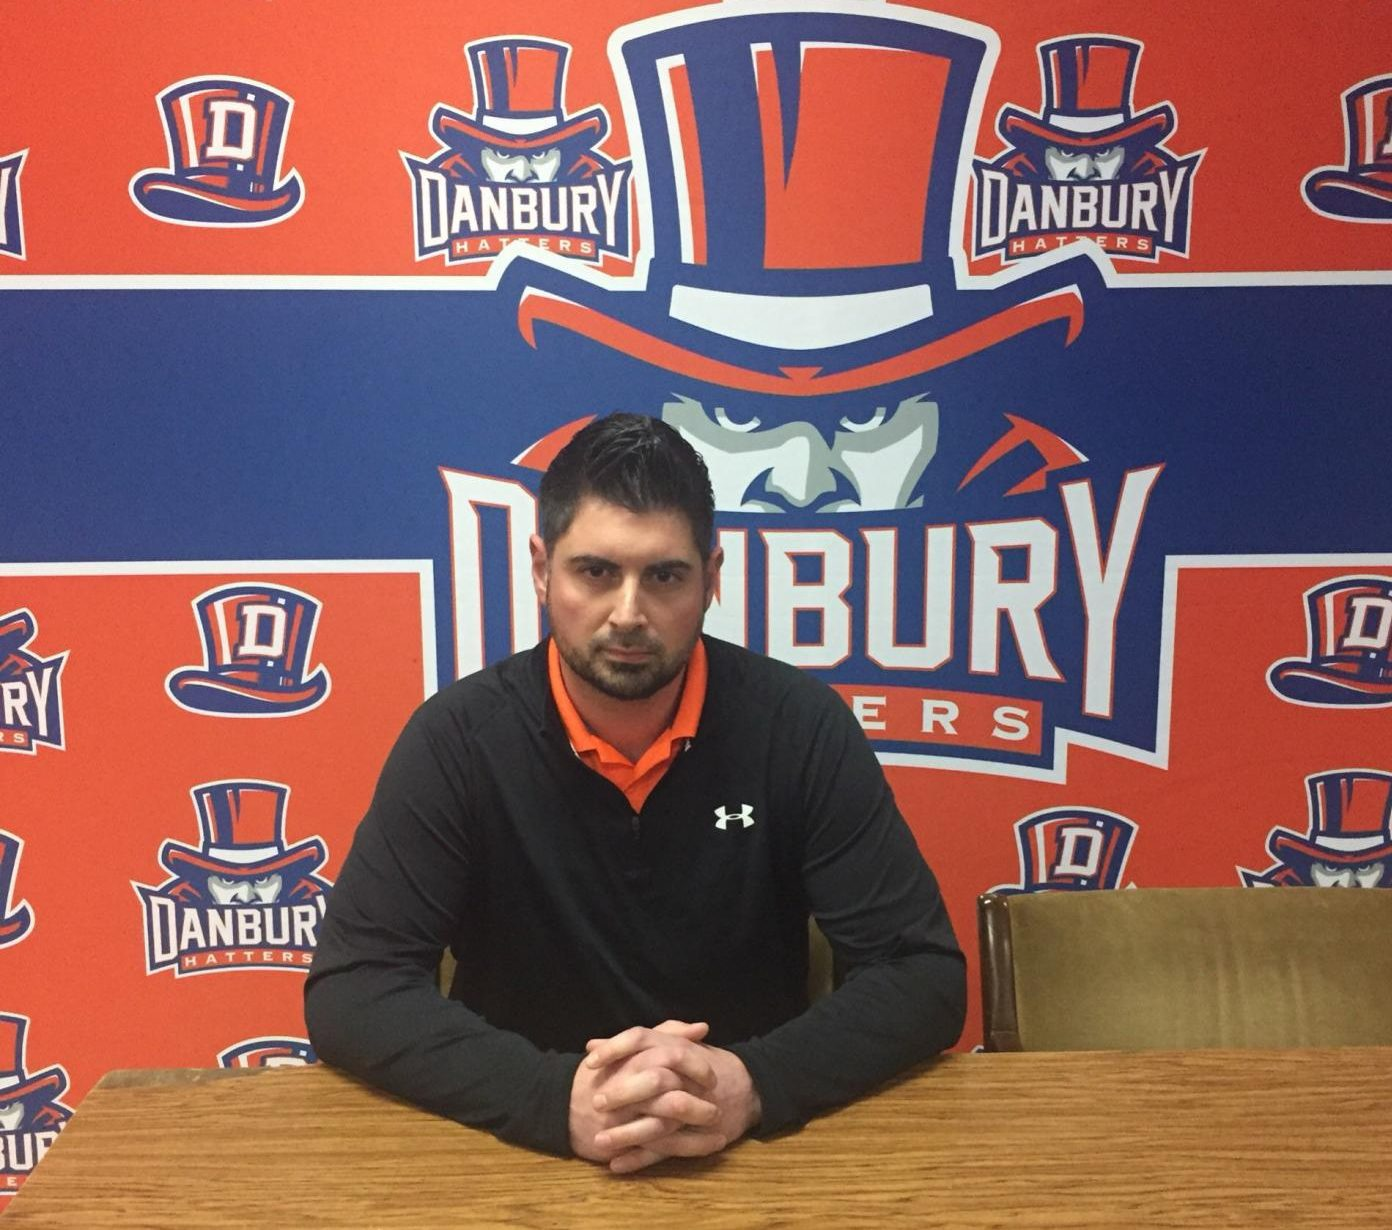 Coach Augustine Tieri sits in front of Danbury's new backdrop to meet with the press after it was announced today that he has been named head football coach.